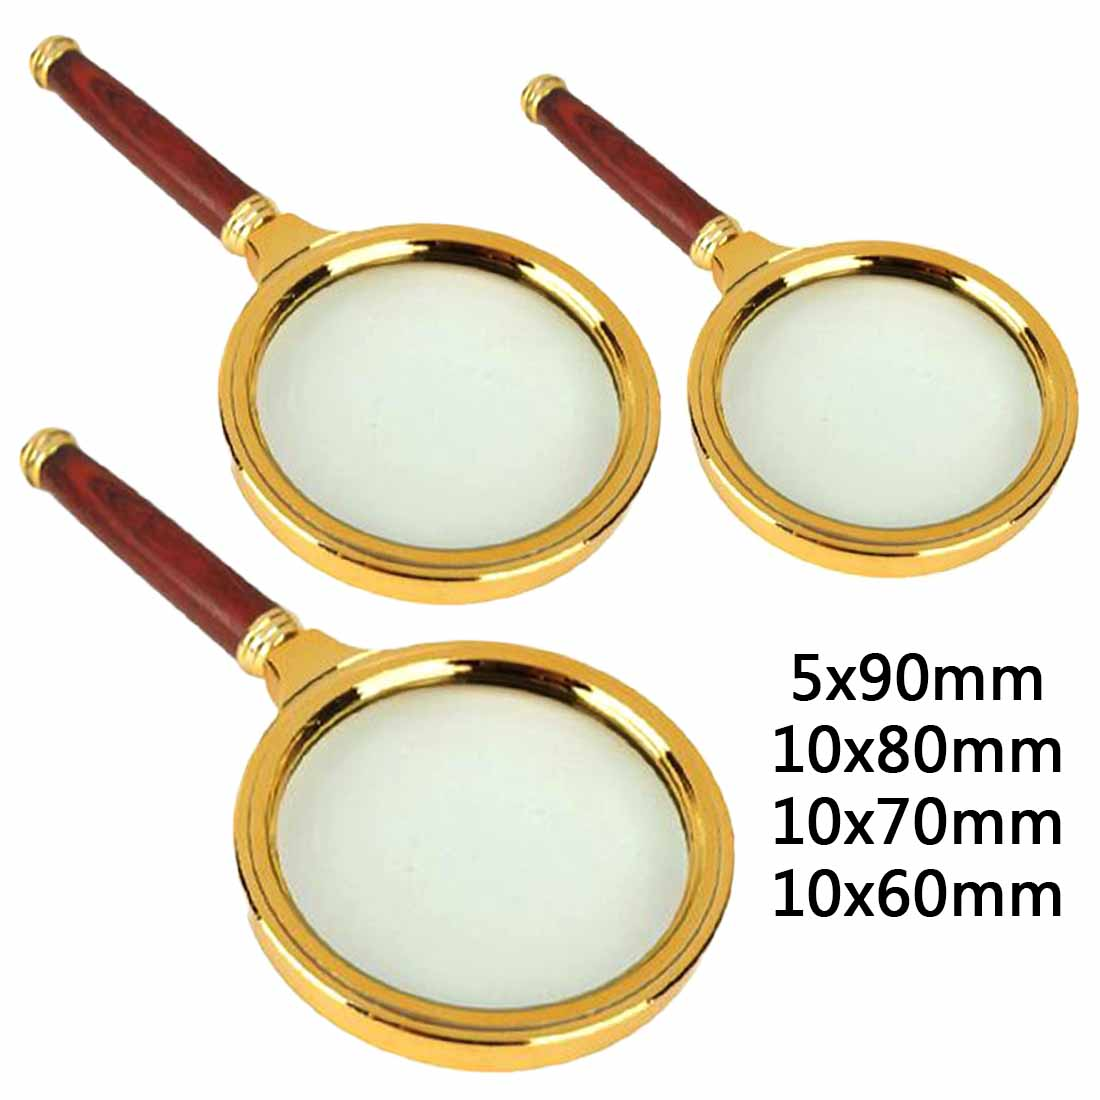 Portable 90mm/80mm/70mm/60mm Handheld 5X/10X Magnifier Magnifying Glass Loupe Reading Jewelry Eye Loupe Magnifier Repair Tool